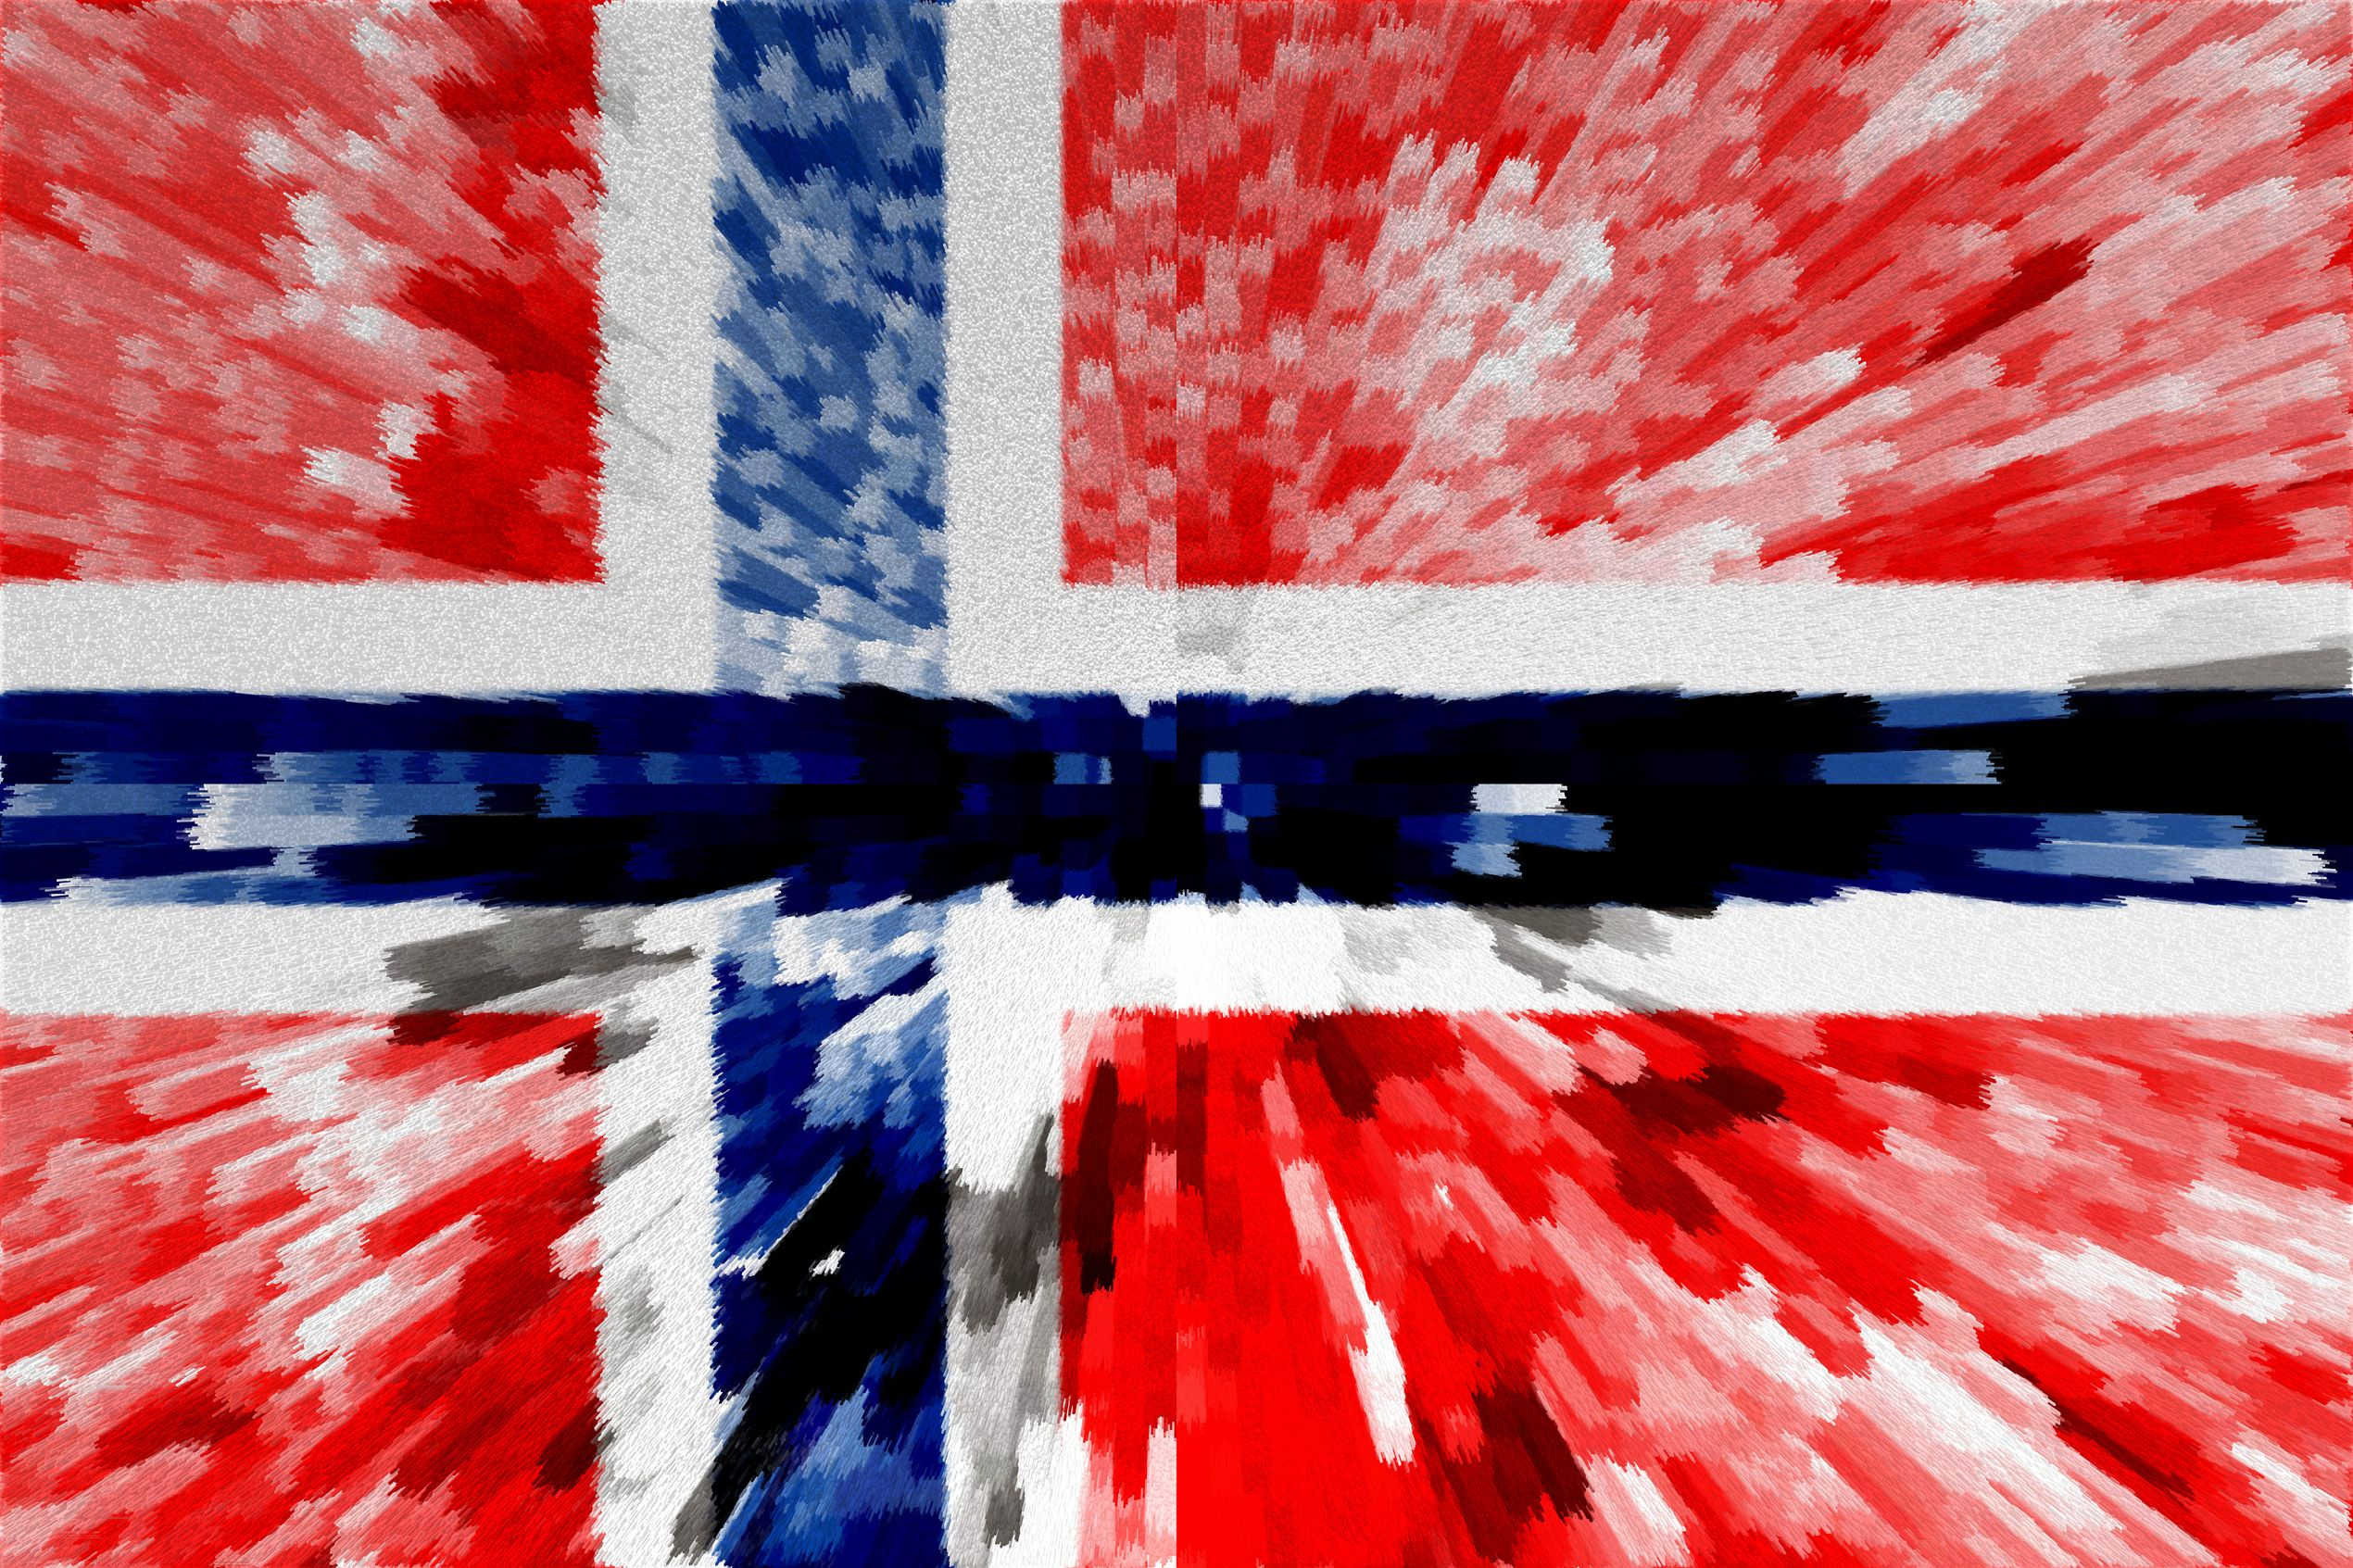 2540x1693 Norway Flag Wallpapers